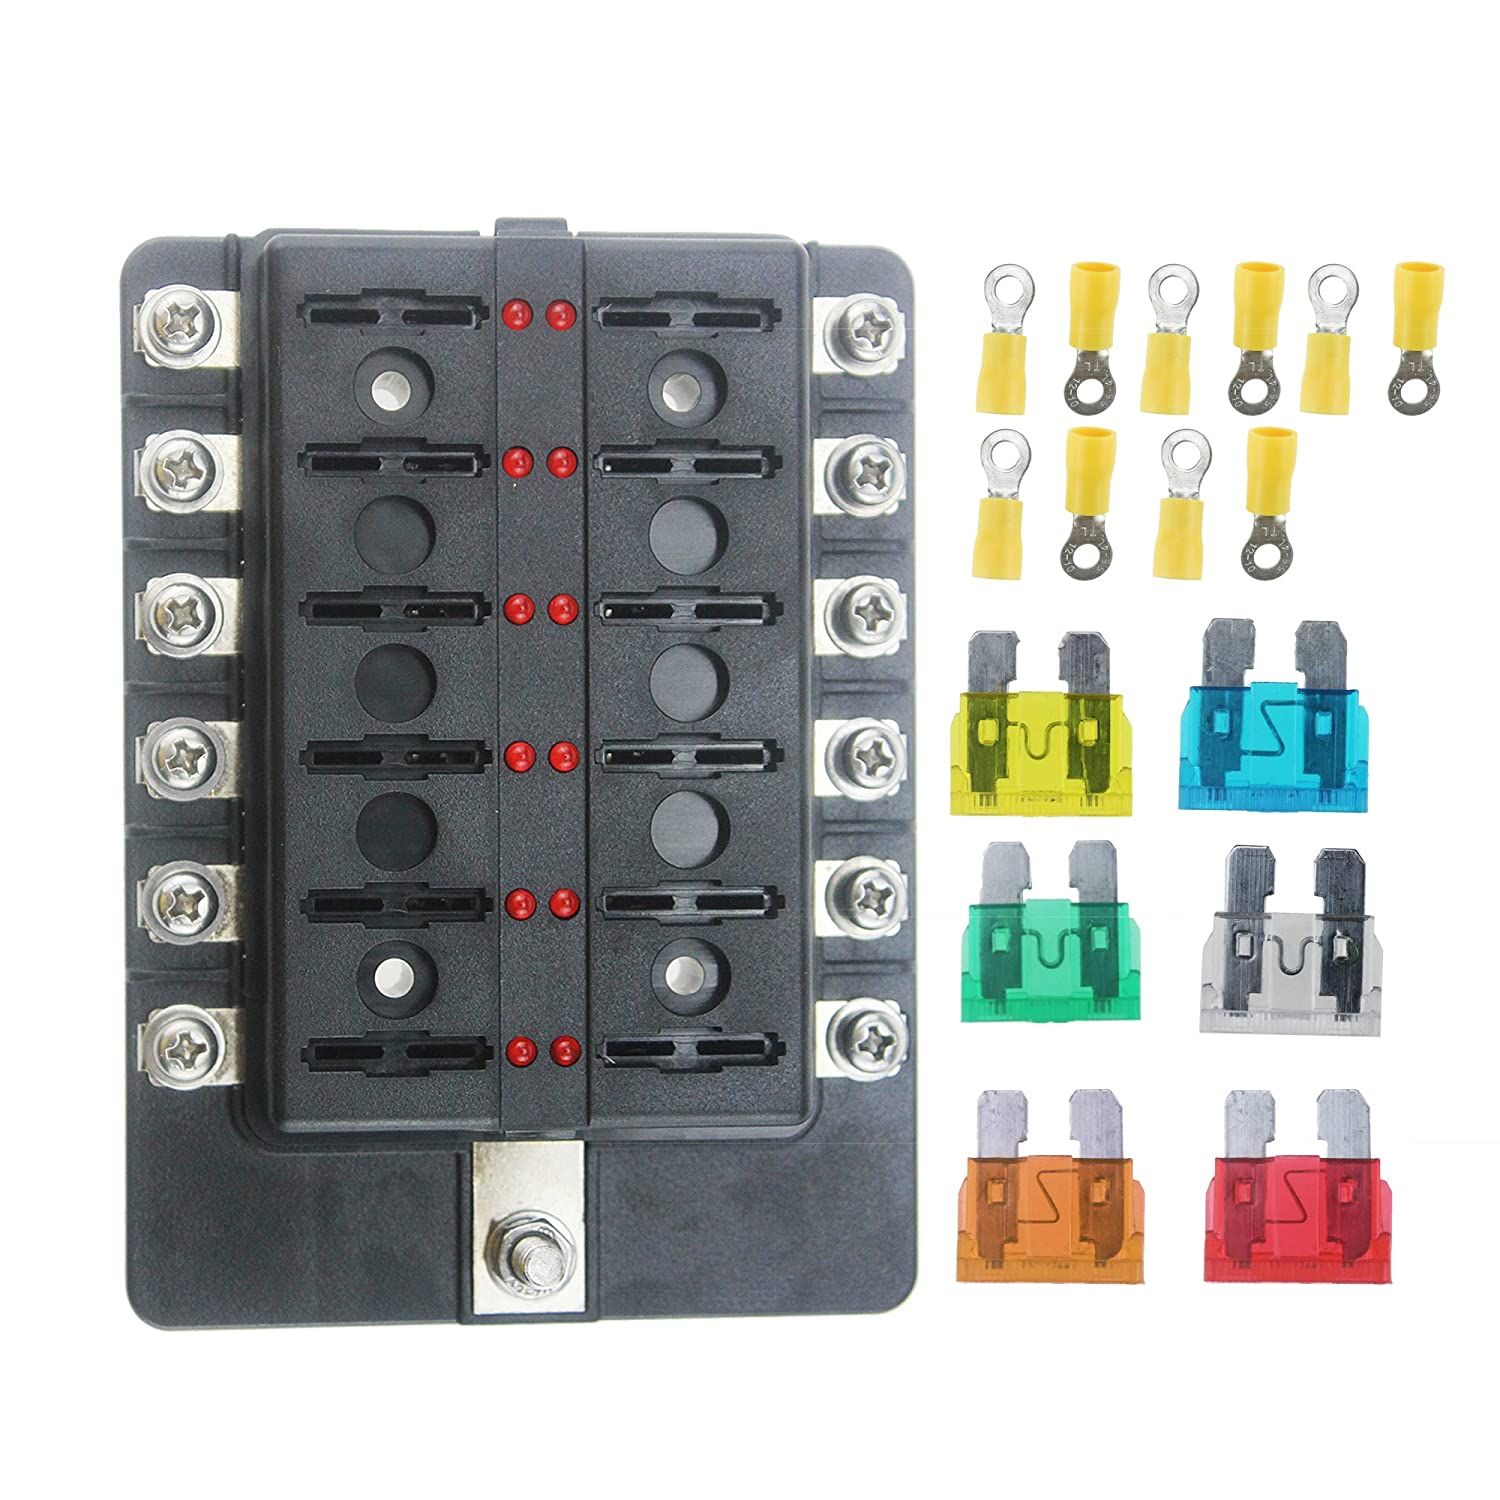 Iztoss 12 Circuit LED Fuse Block Fuse Box with screw terminal with accessories and kits for Car Boat Marine Trike